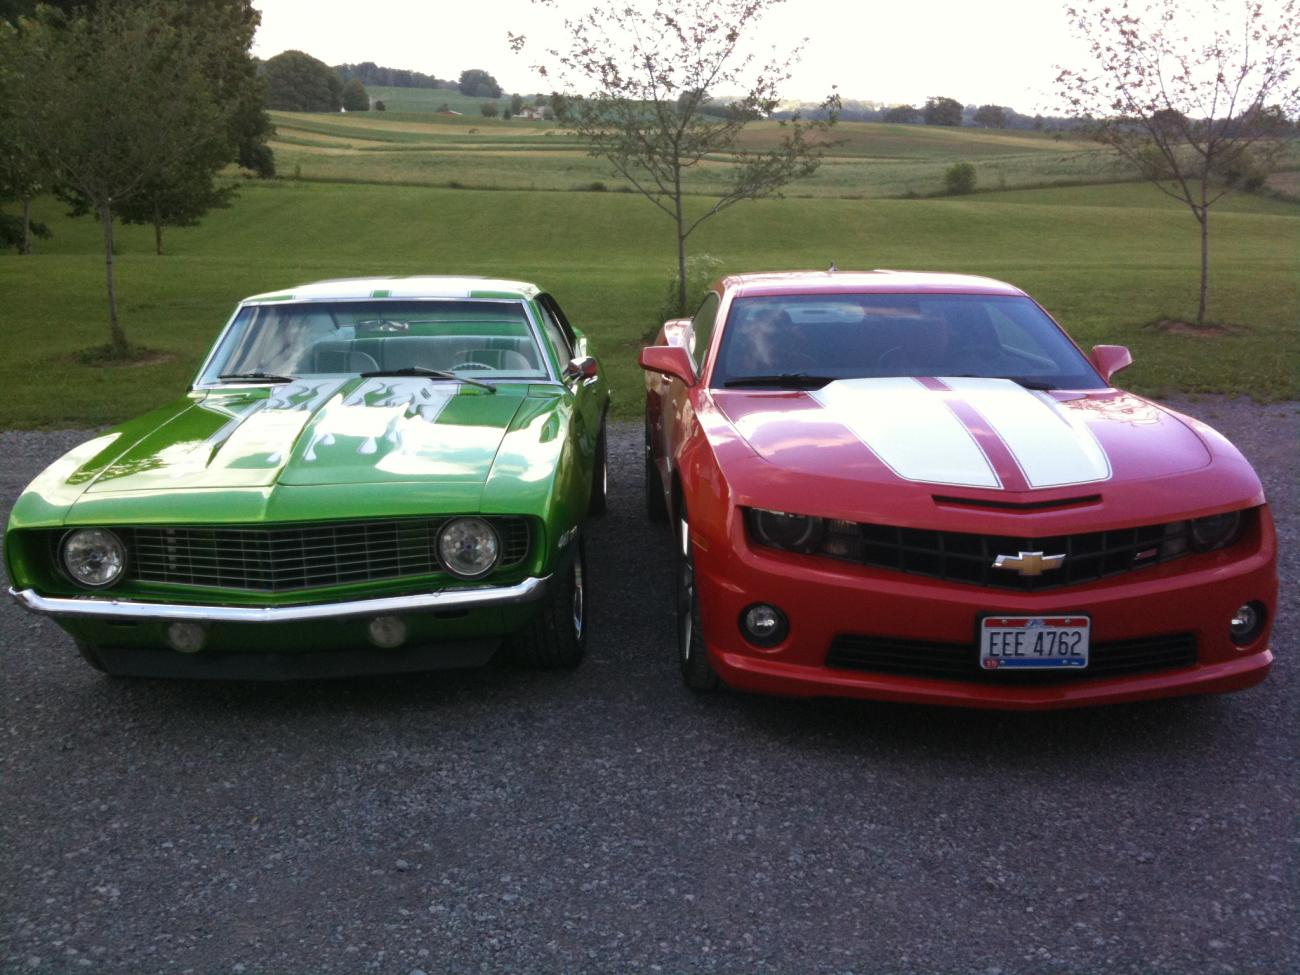 1969 Camaro And 2010 2ss Iom Both For Sale Camaro5 Chevy